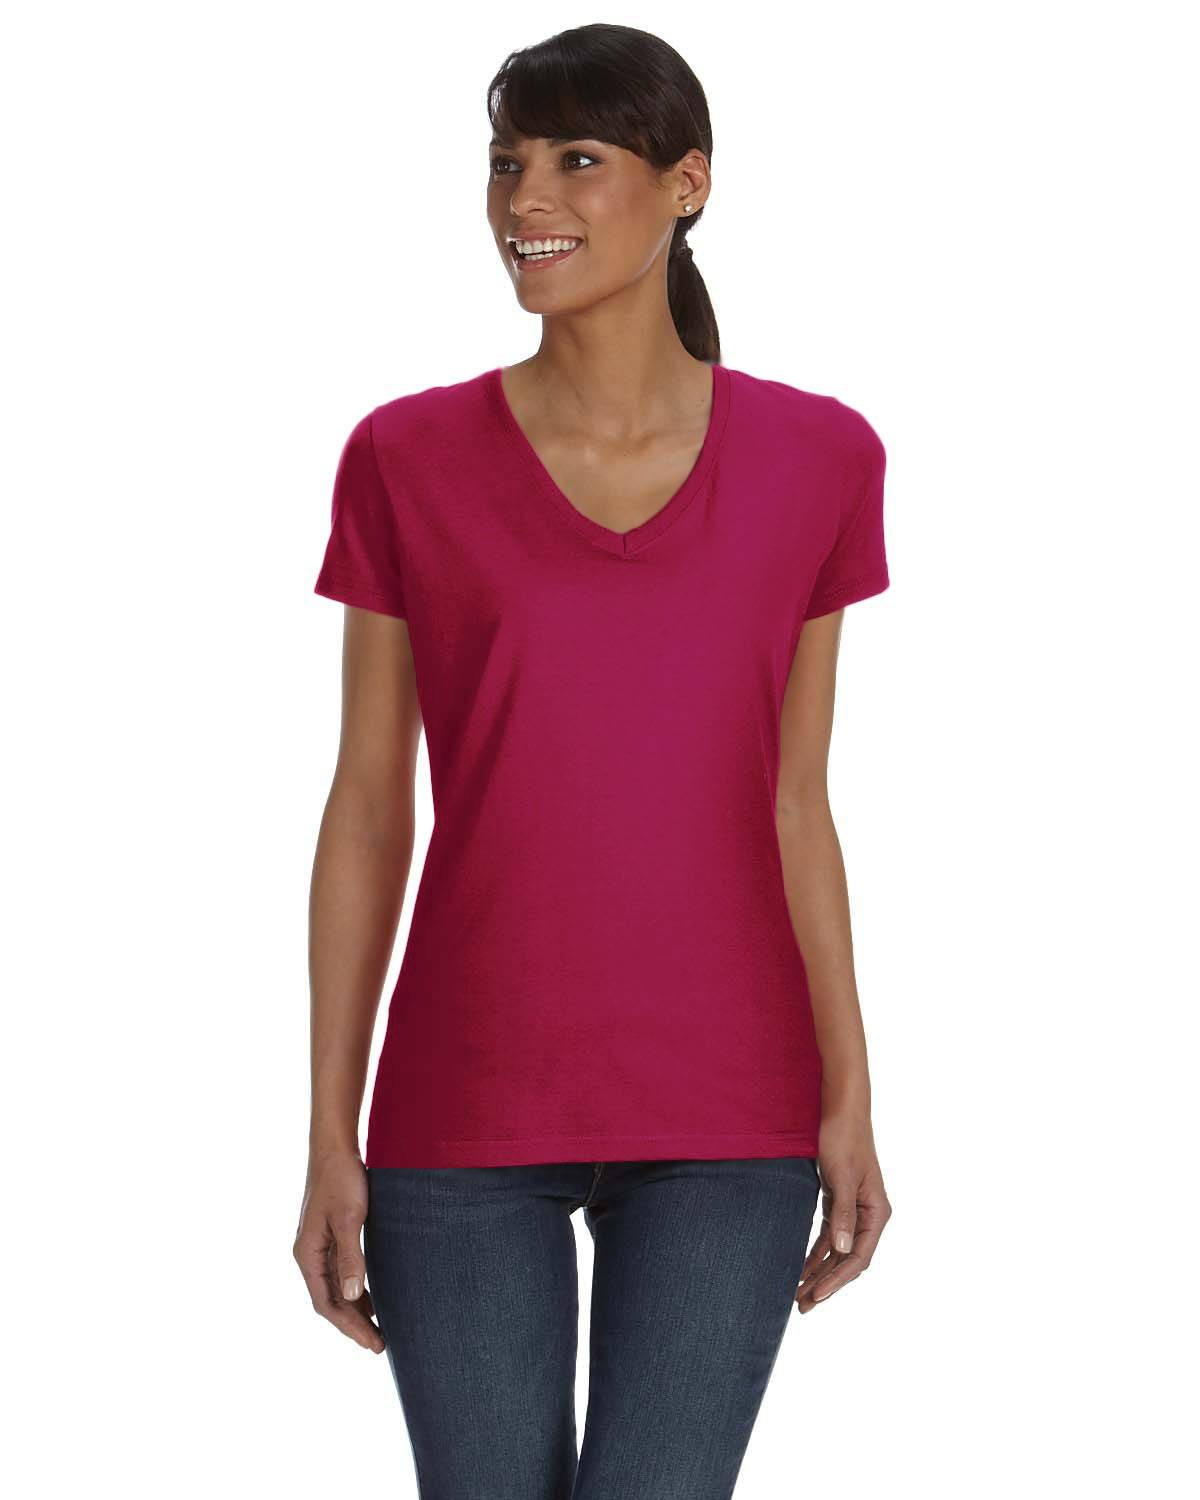 Fruit of the Loom Ladies' 8.3 oz./lin. yd. HD Cotton V-Neck T-Shirt | L39VR